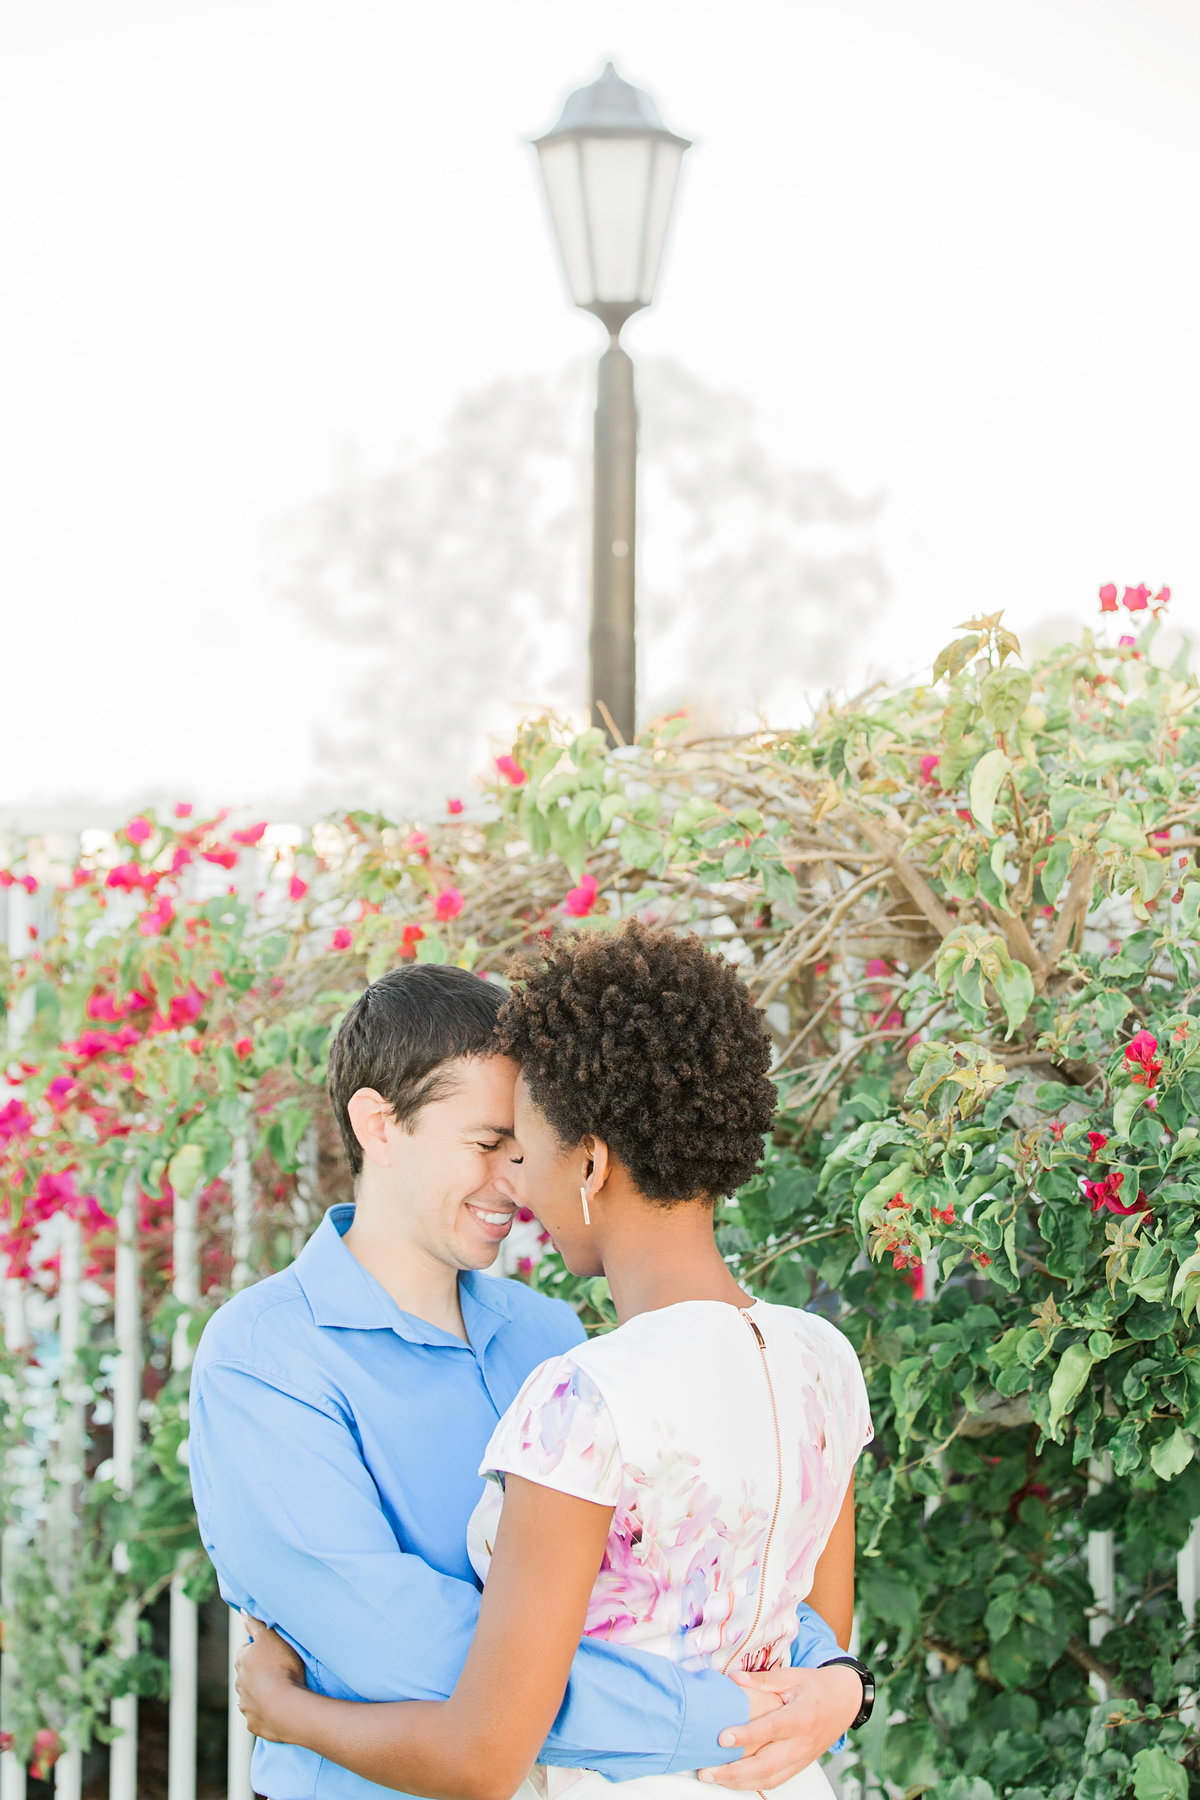 Babsie-Ly-Photography-fine-art-film-destination-engagement-photographer-san-diego-coronado-beach-centennial-park-city-view-002